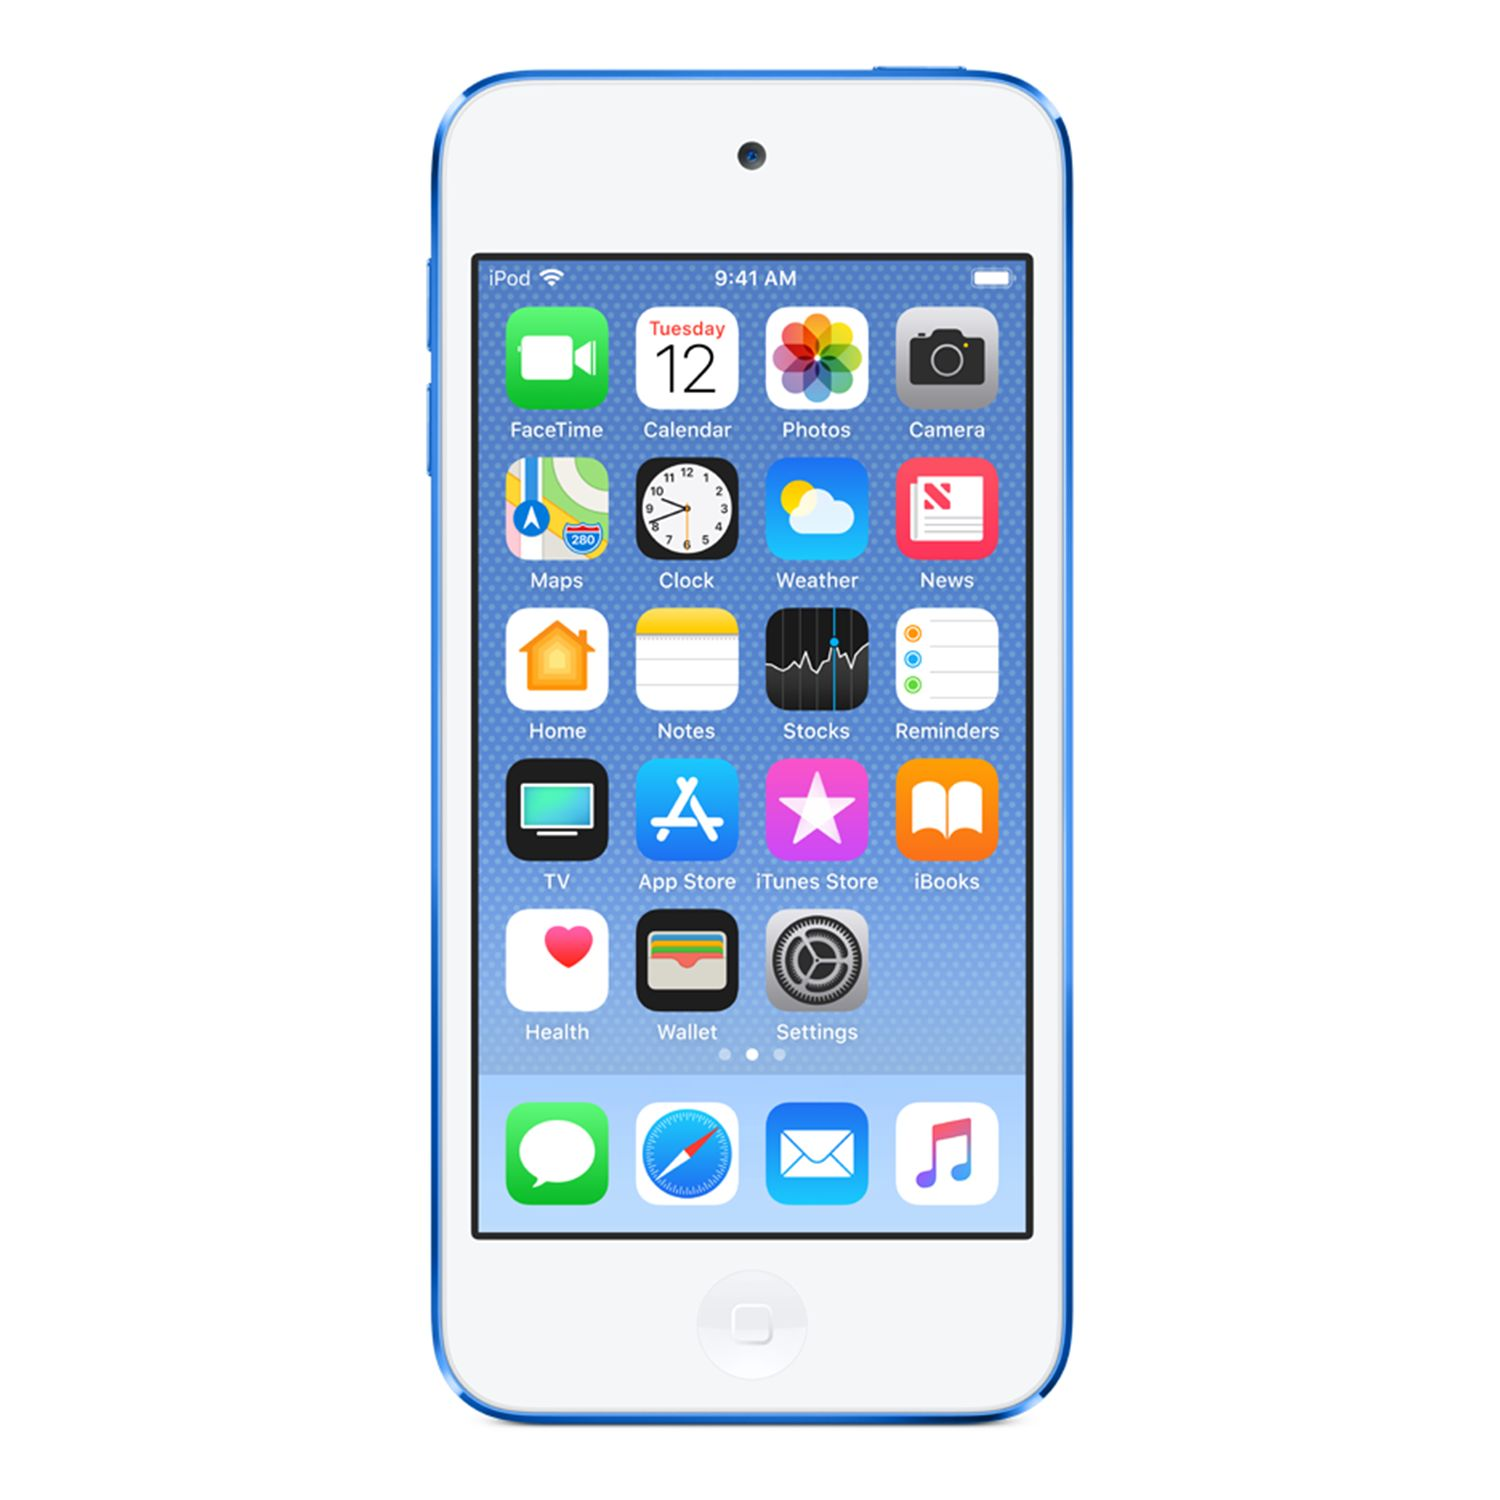 apple ipod touch 32gb rh kohls com ipod touch 5th generation 32gb user guide ipod touch 3rd generation 32gb user manual